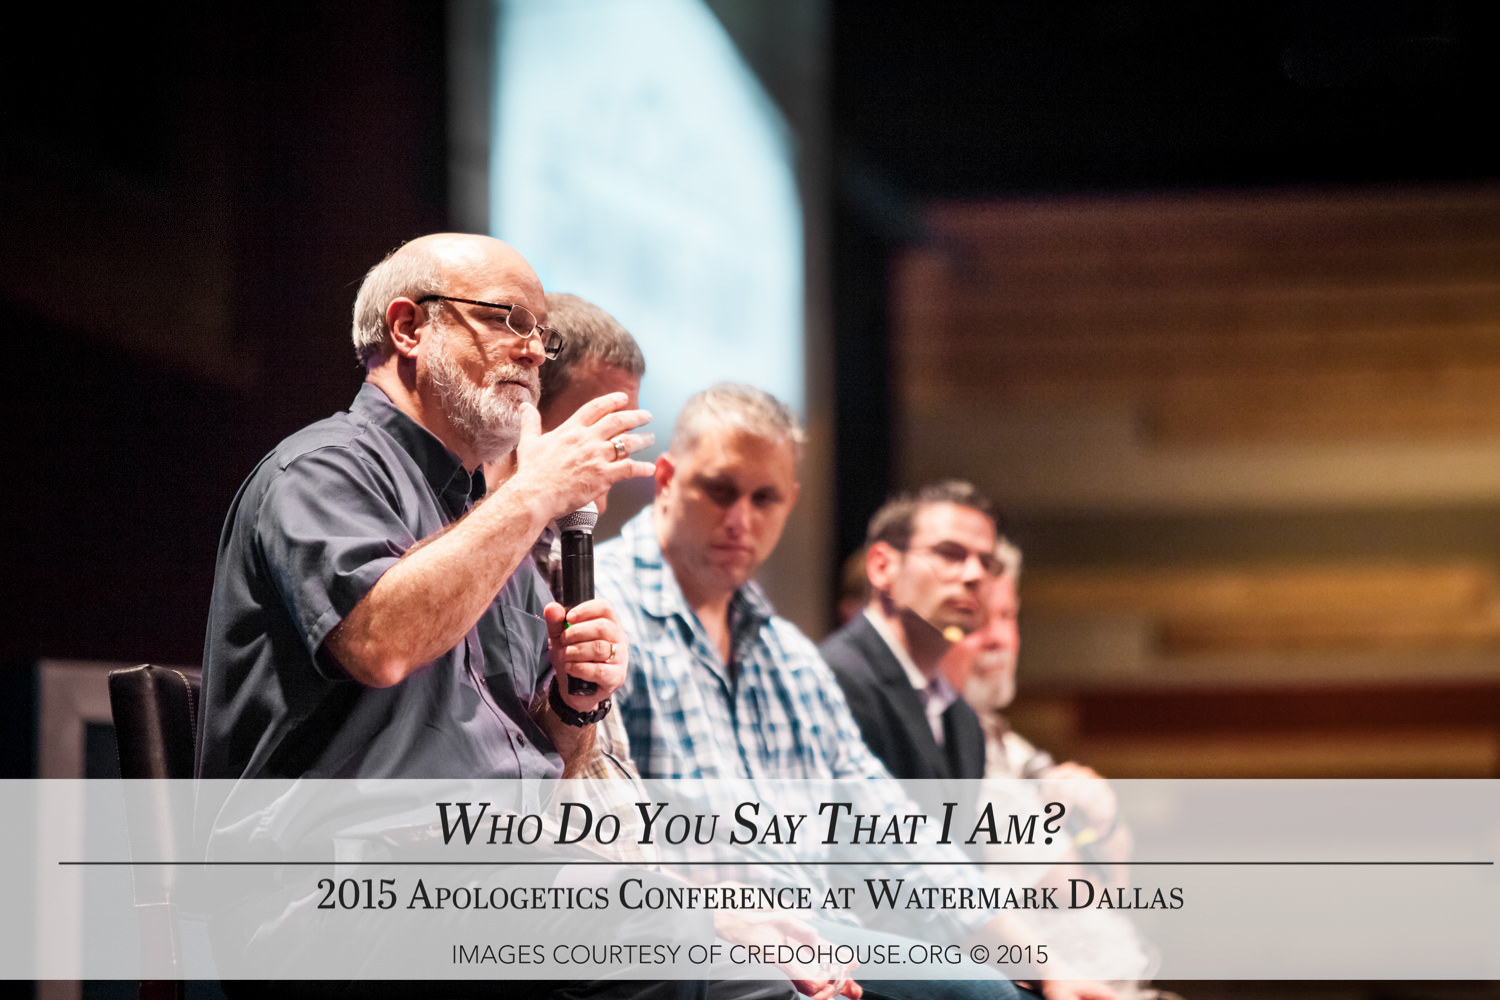 watermark-who-do-you-say-that-i-am-3448